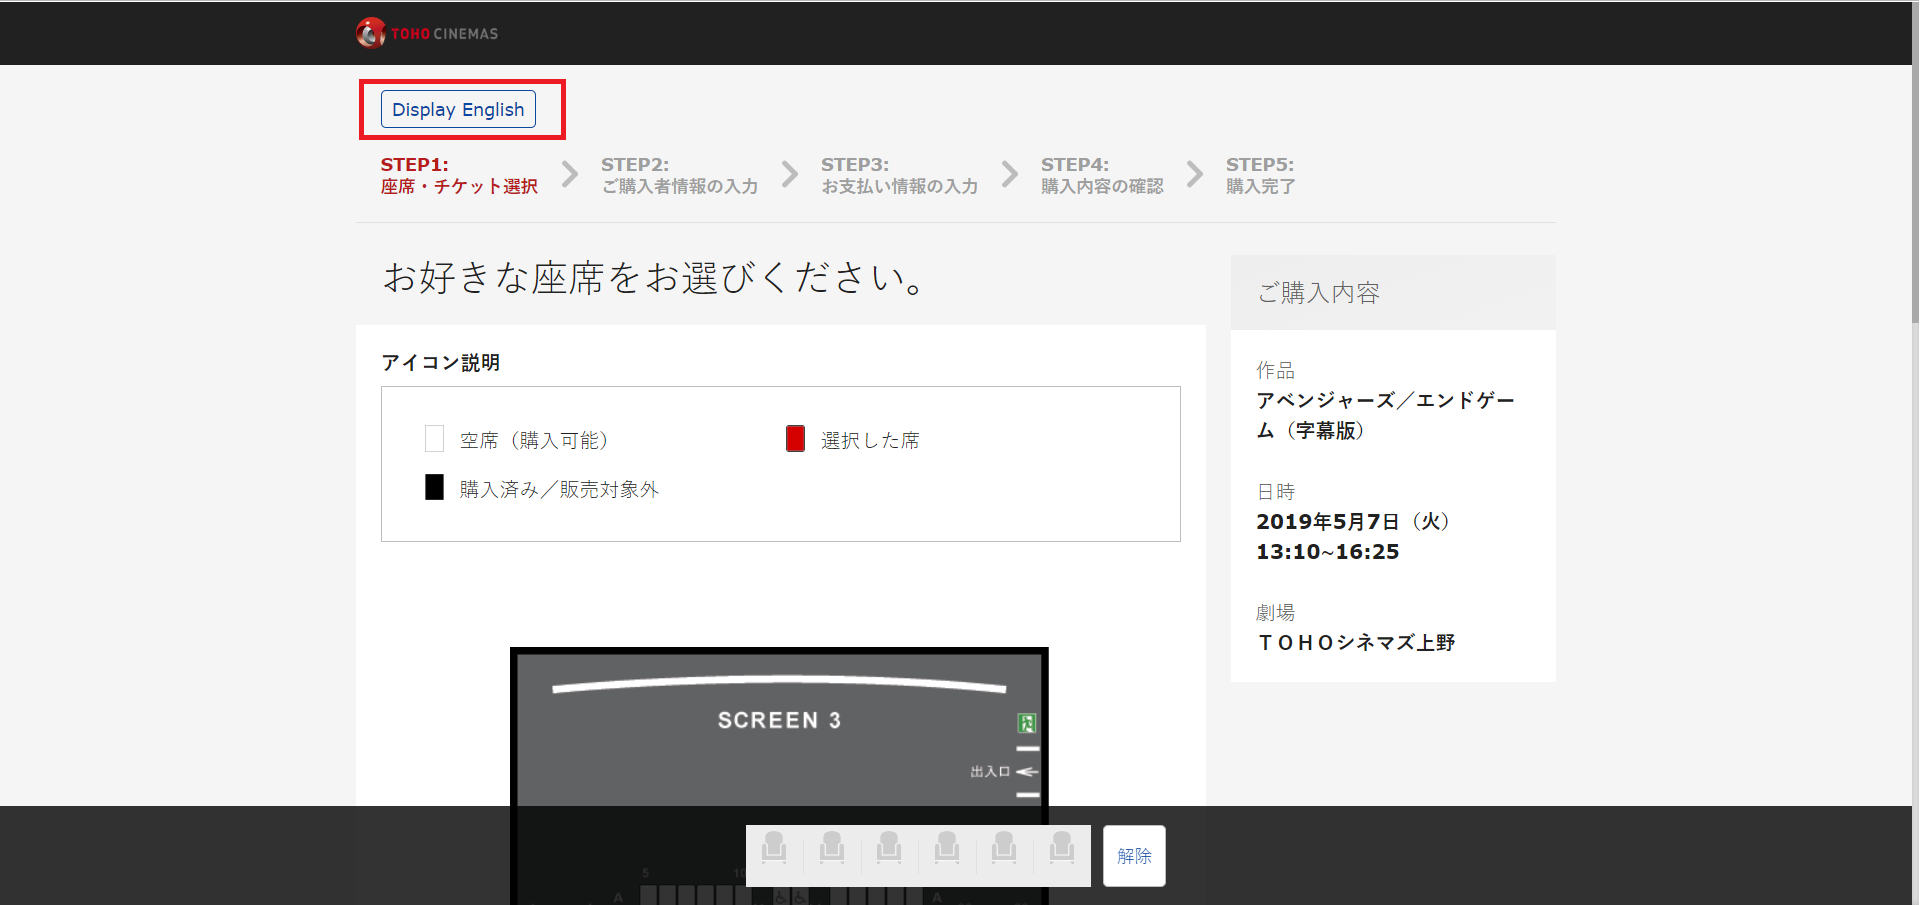 Steps on How to Buy Movie Tickets Online for Toho Cinemas-04-1